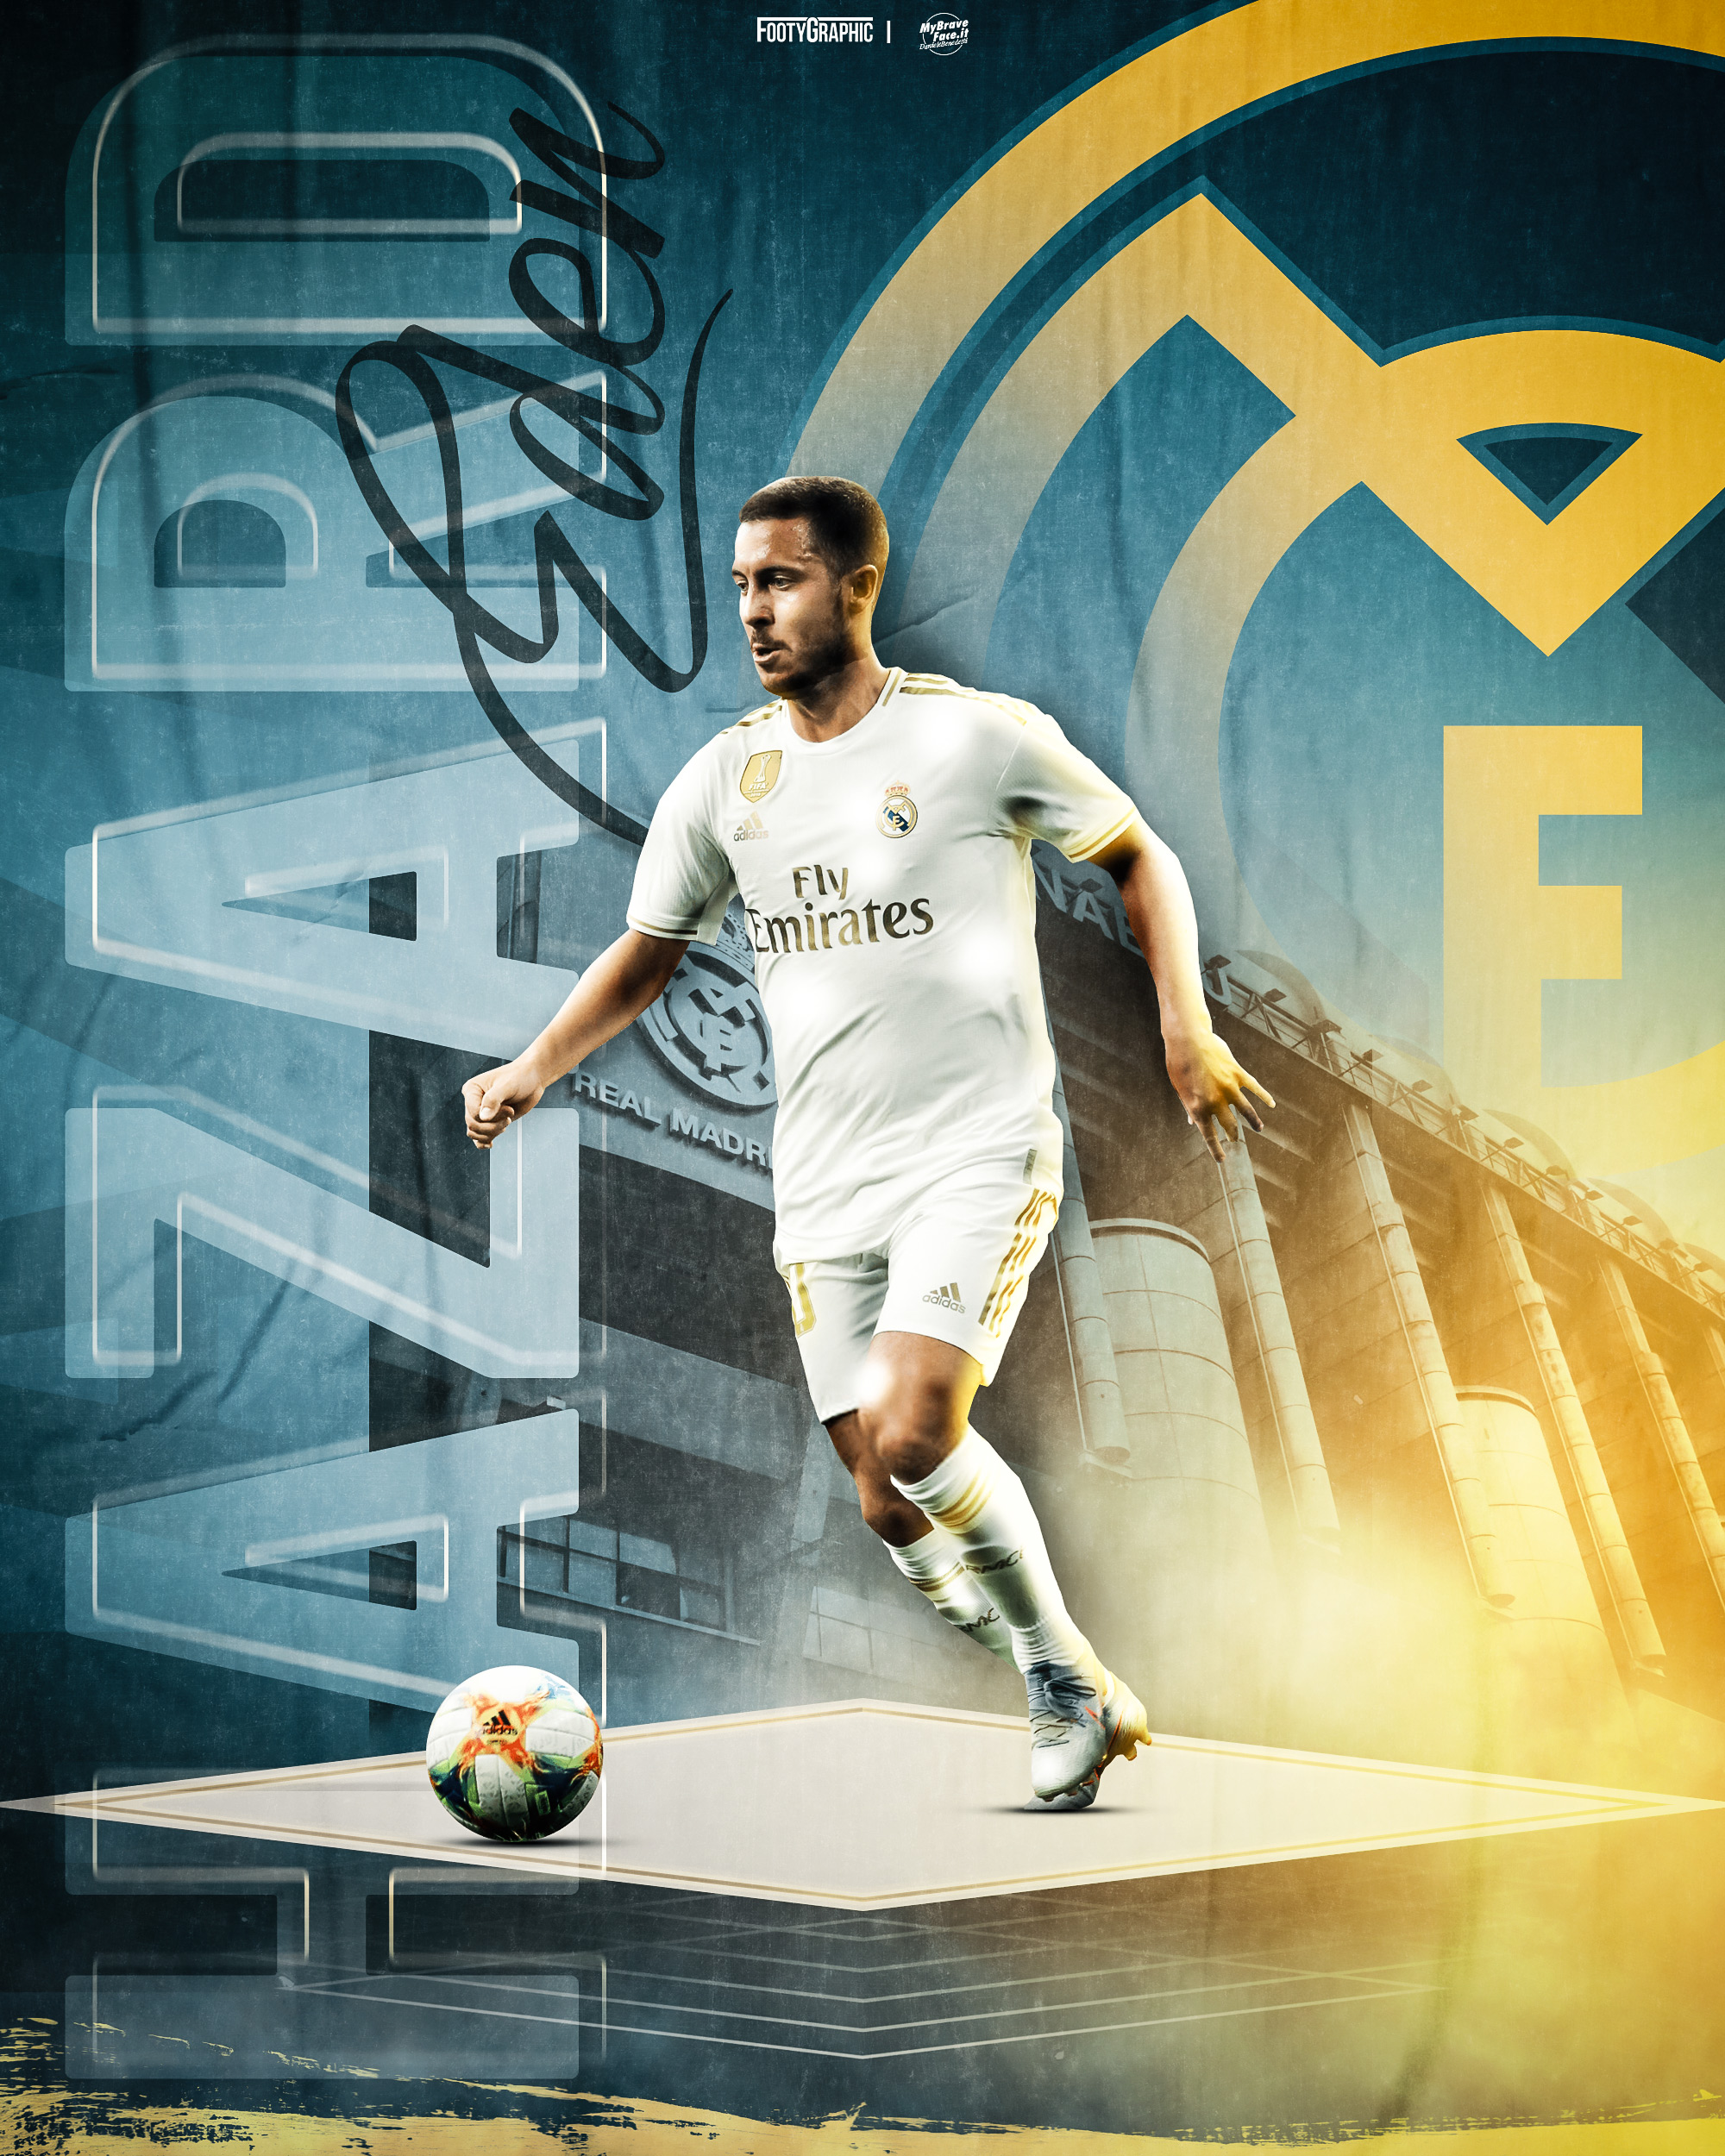 Photomanipulation in collaboration with FootyGraphic